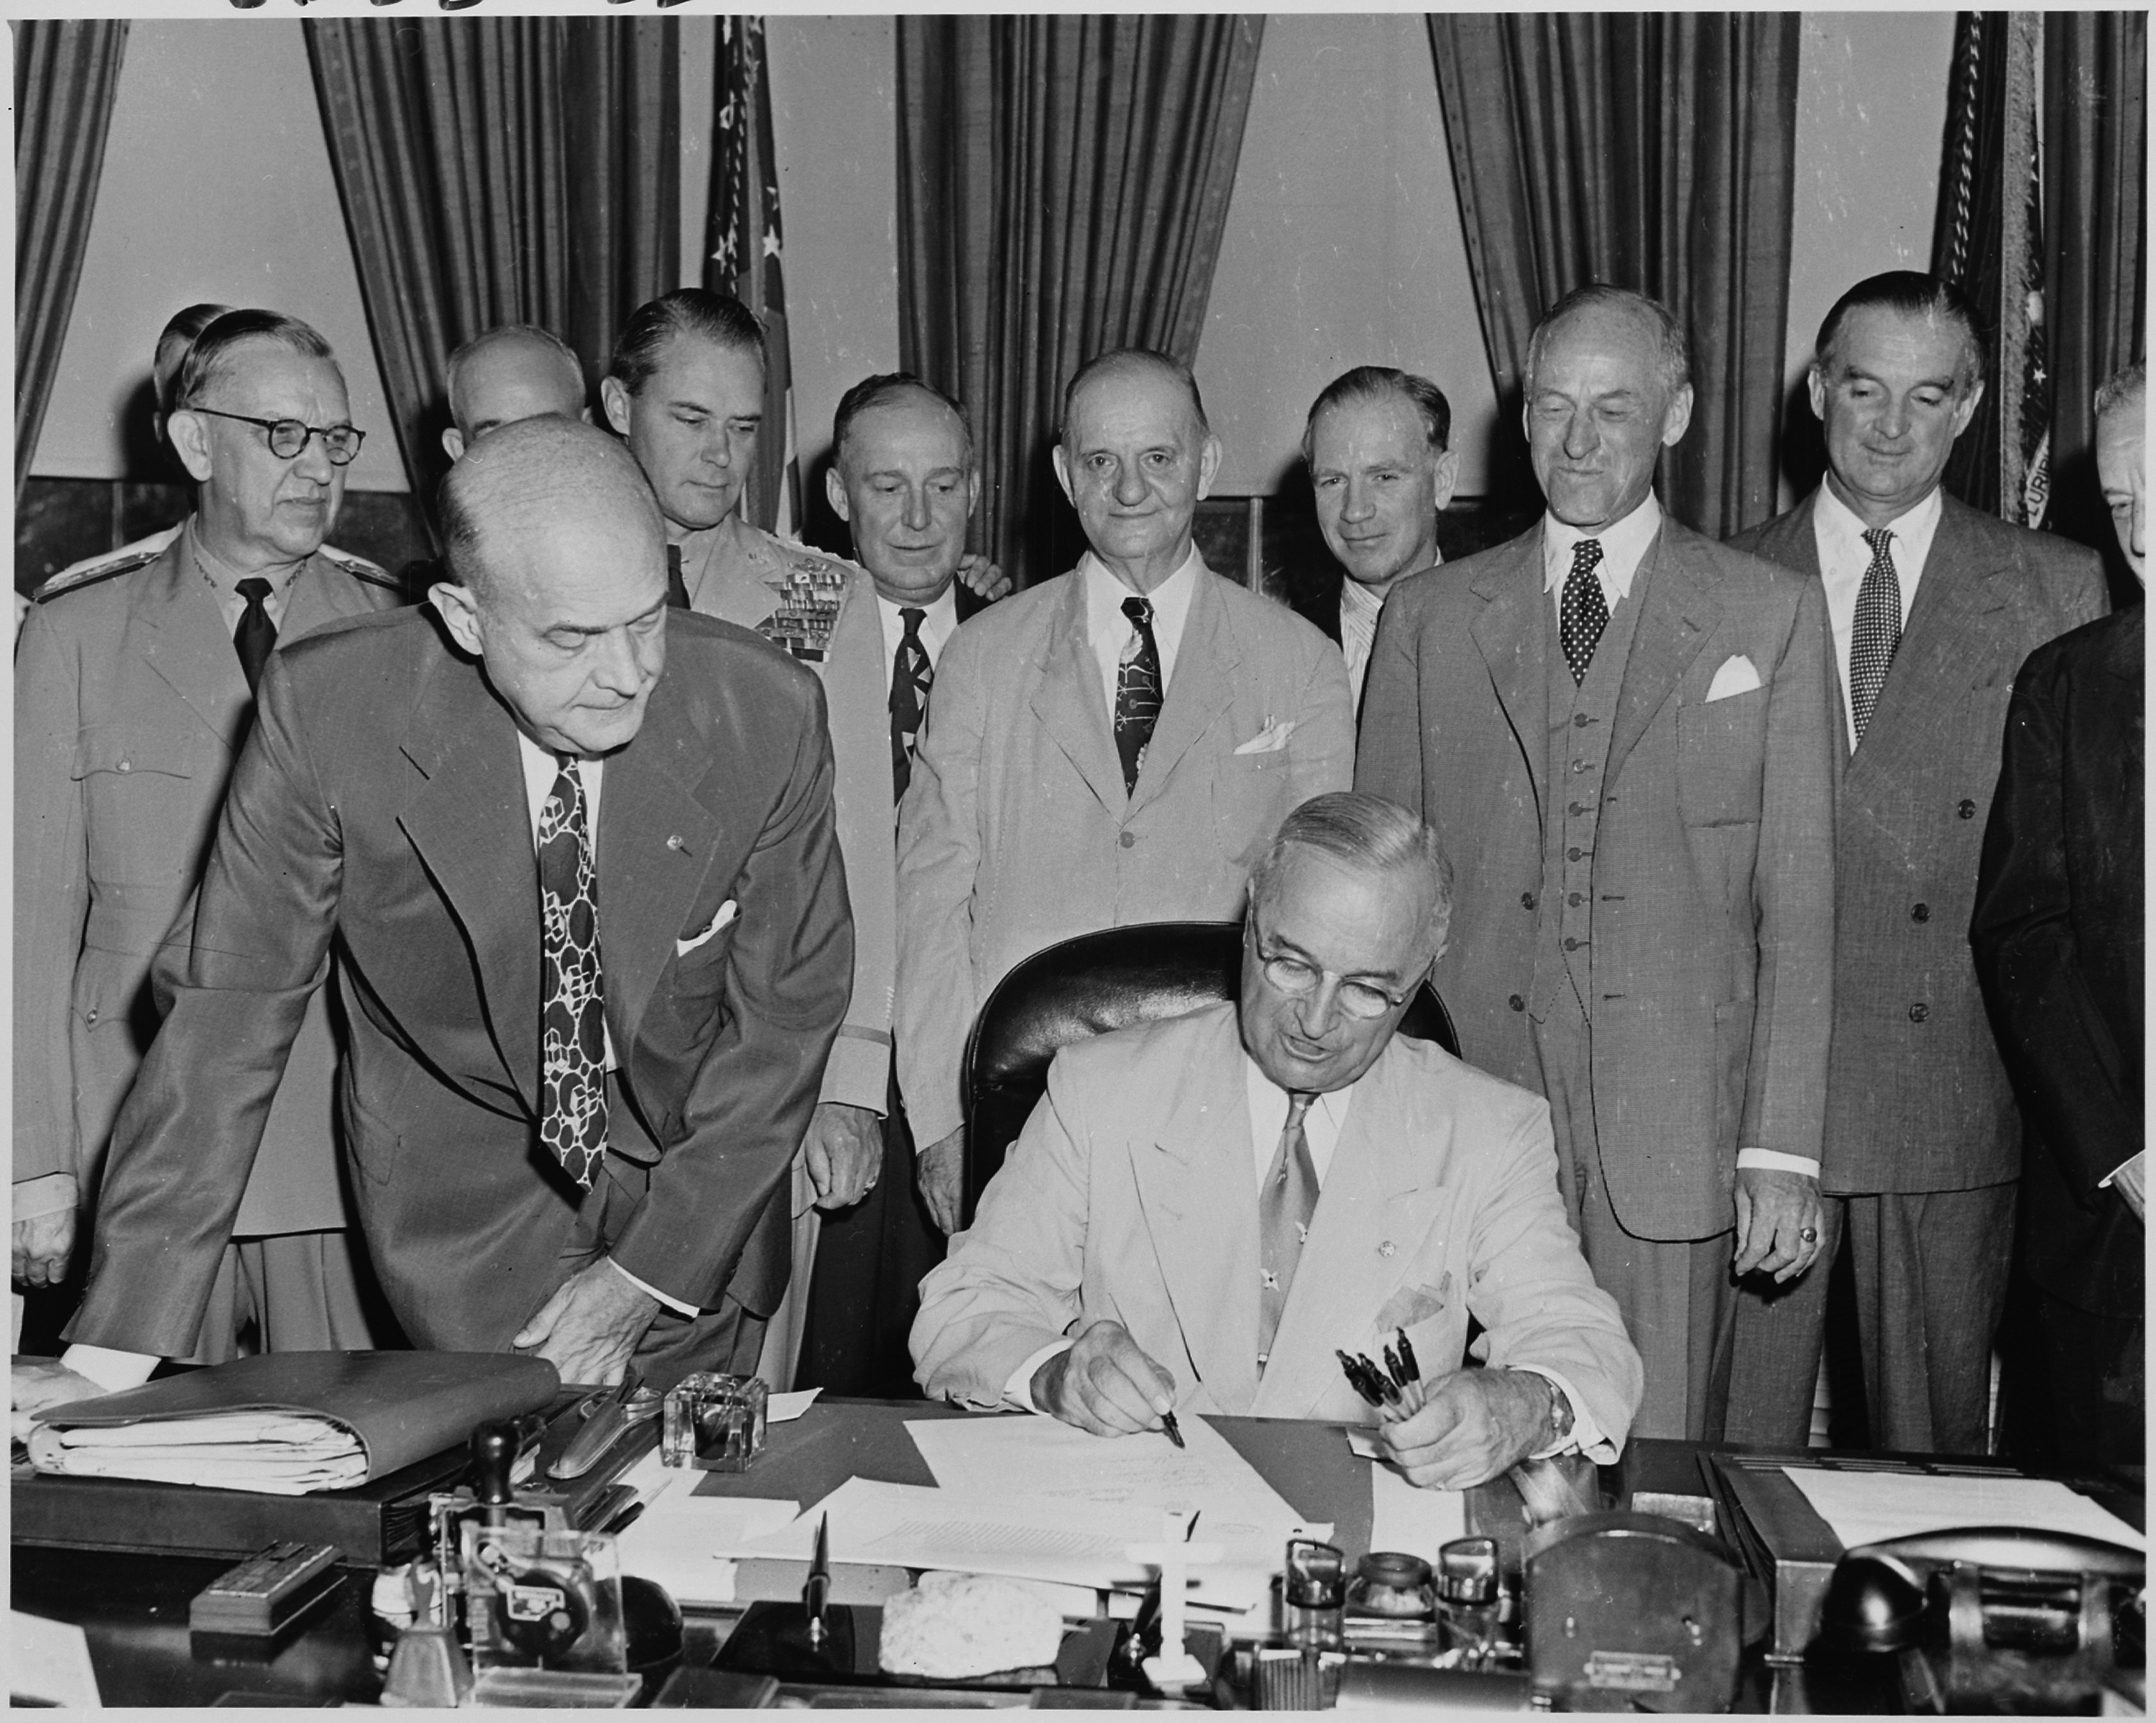 President Truman signs the National Security Act Amendment of 1949